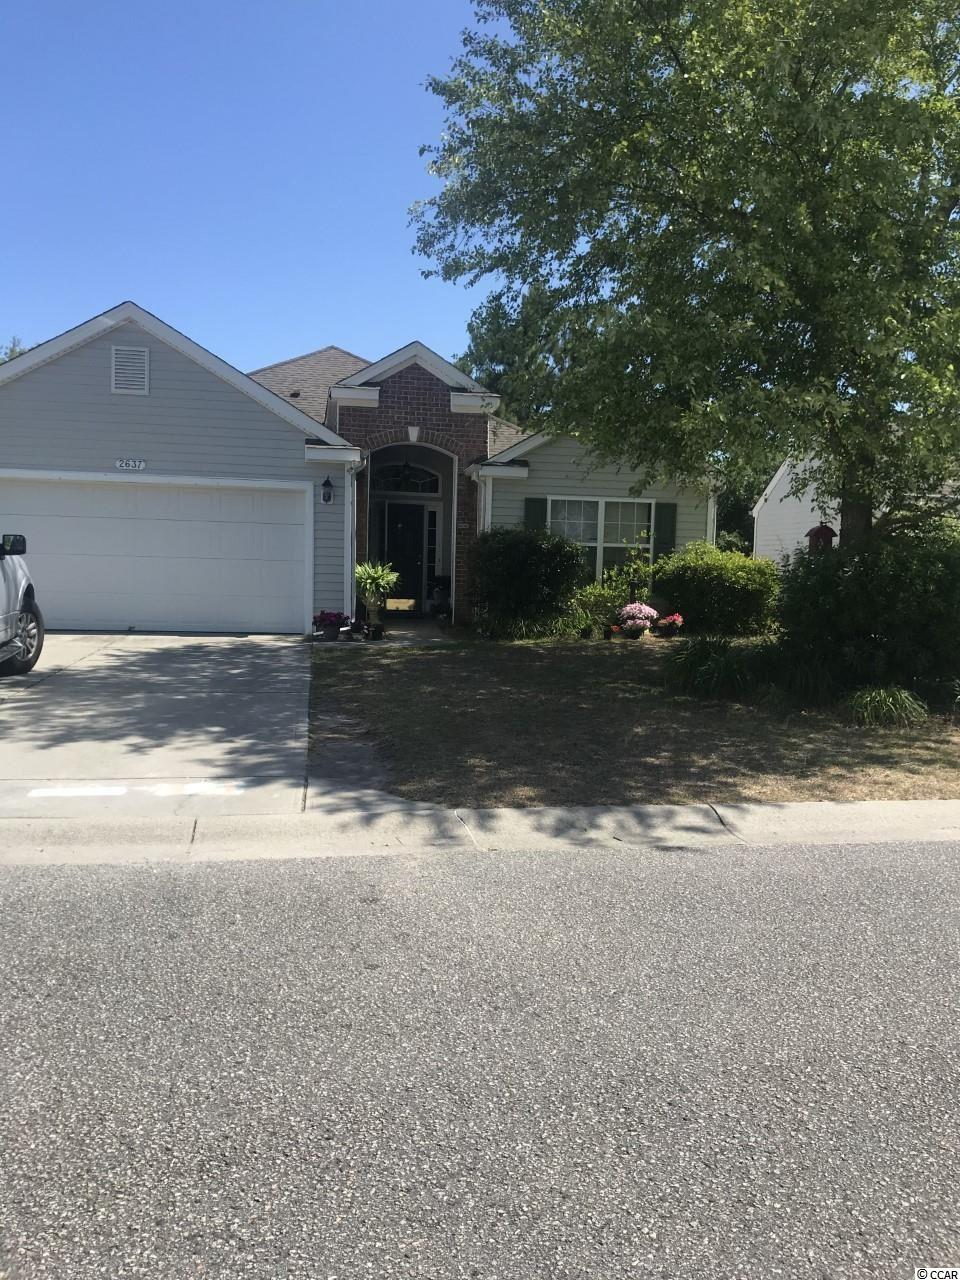 Home is located at the Farm in the Carolina Forest. # bedrooms and 2 full baths. Community has 2 pools, playground, exercise room, basketball courts, and bicycle lanes. The Farm is located close to shopping, schools, restaurants, and entertainment.